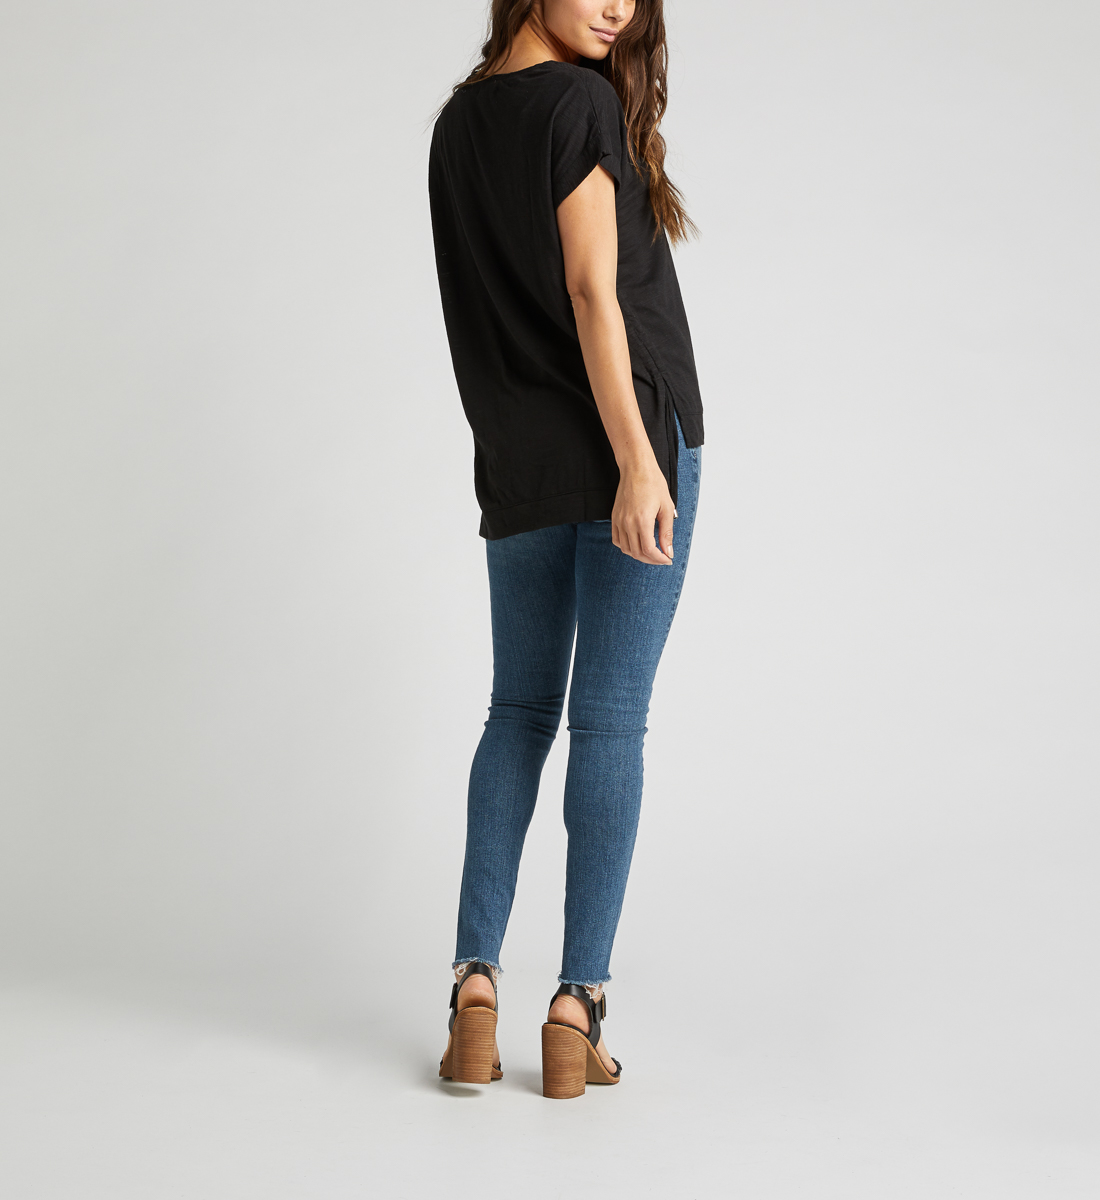 Agnes Side Tie Top,Black Side